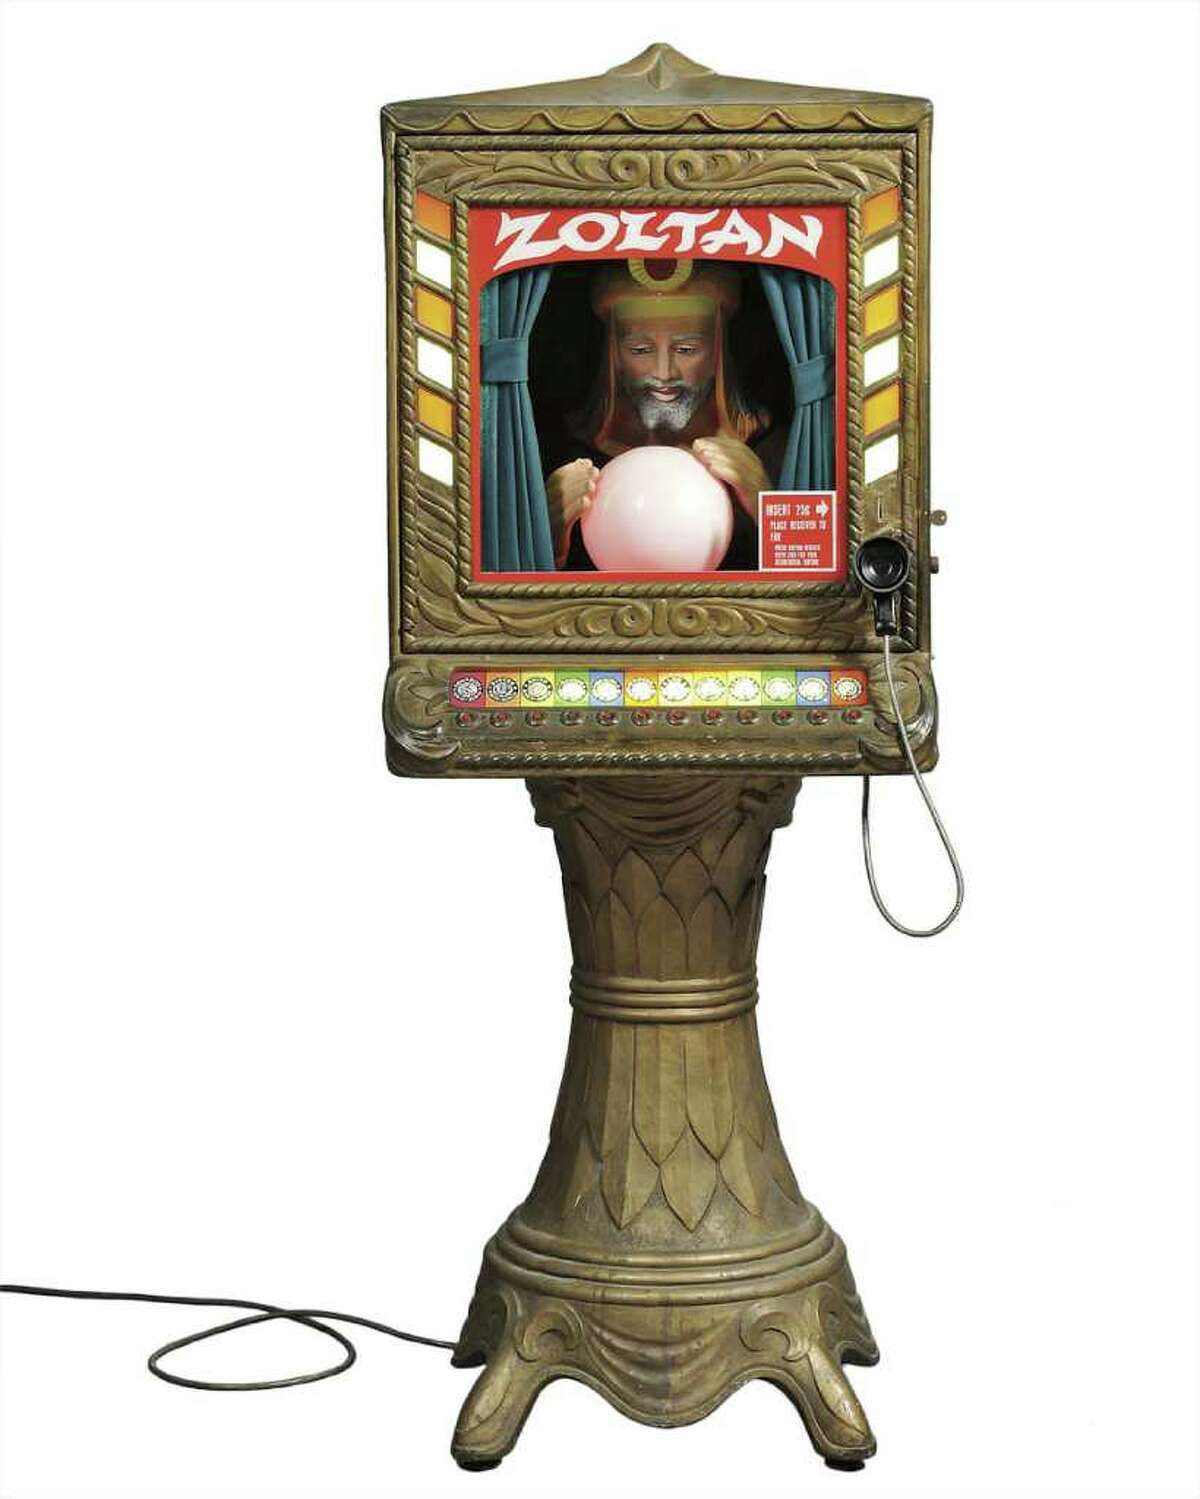 This is Zoltan, the coin-operated fortune teller made of fiberglass by Prophetron, Inc., in the early 1970s. The fortune was spoken by a voice thatís heard through an earpiece. Skinner, Inc., of Marlborough, Mass., auctioned it for $3,500. (Photo courtesy of Skinner, Inc.)